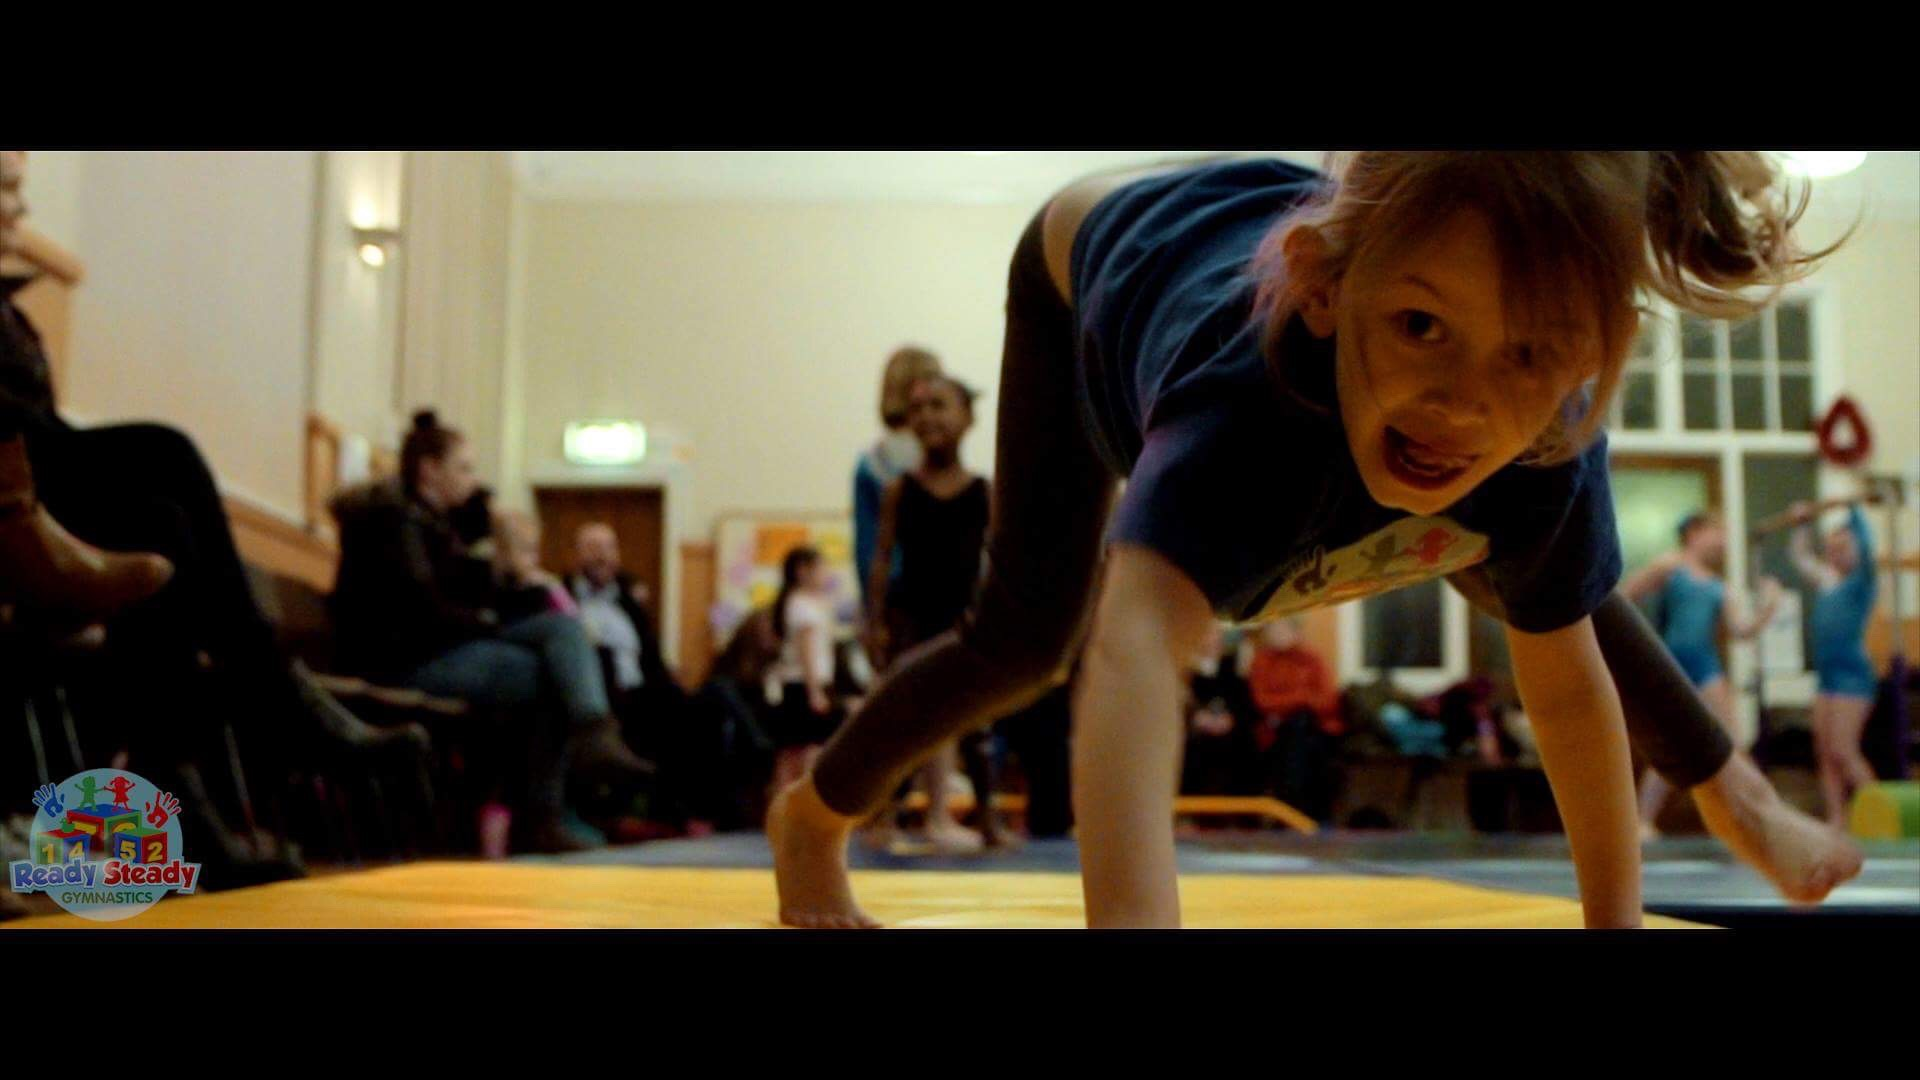 Gymnast Performing at Ready Steady Gymnastics